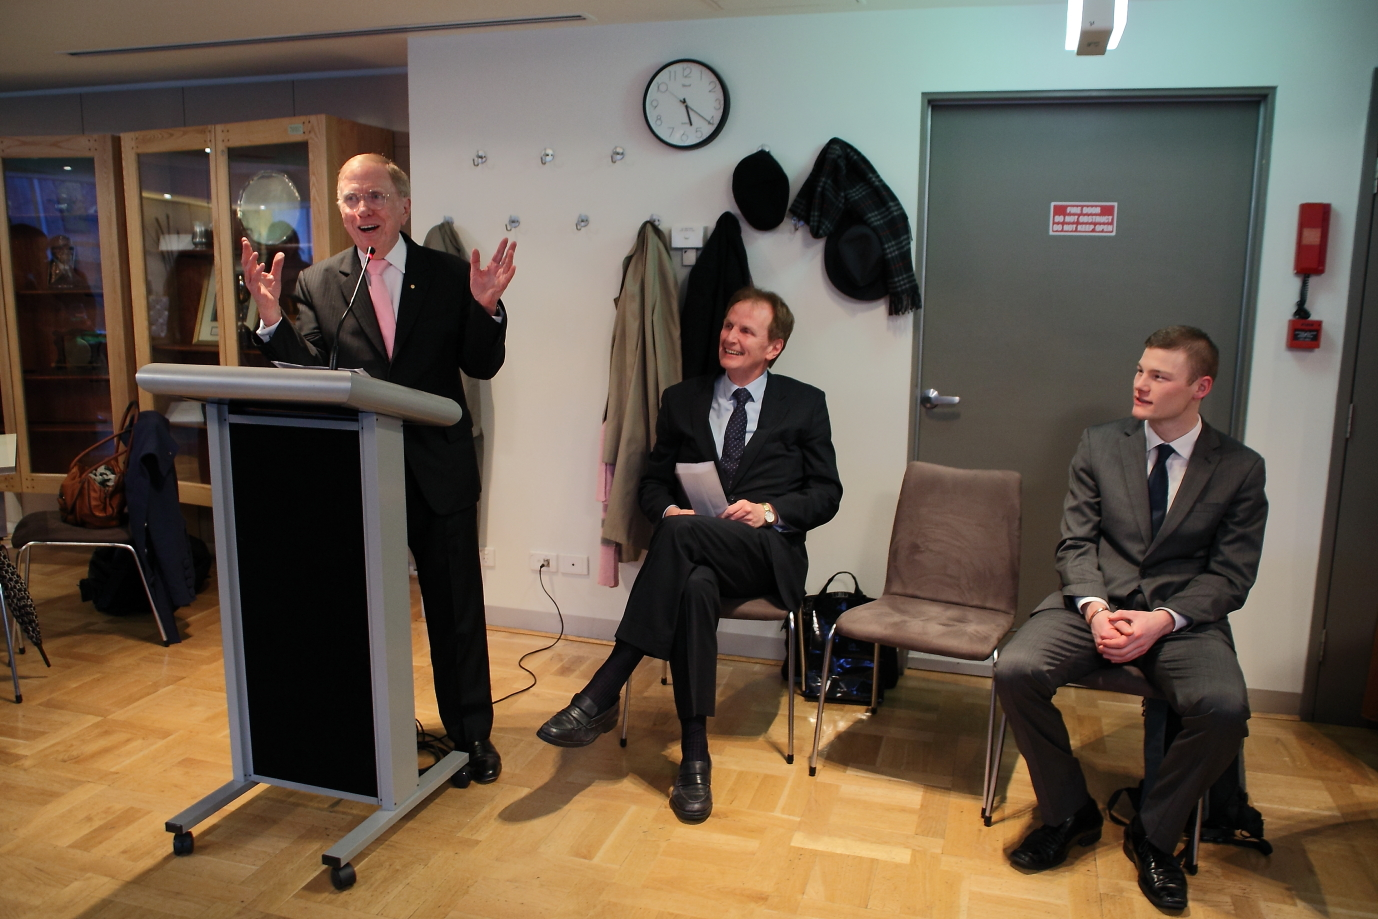 The Hon. Michael Kirby; Graeme McEwen; and Adam Ray (contributing author)